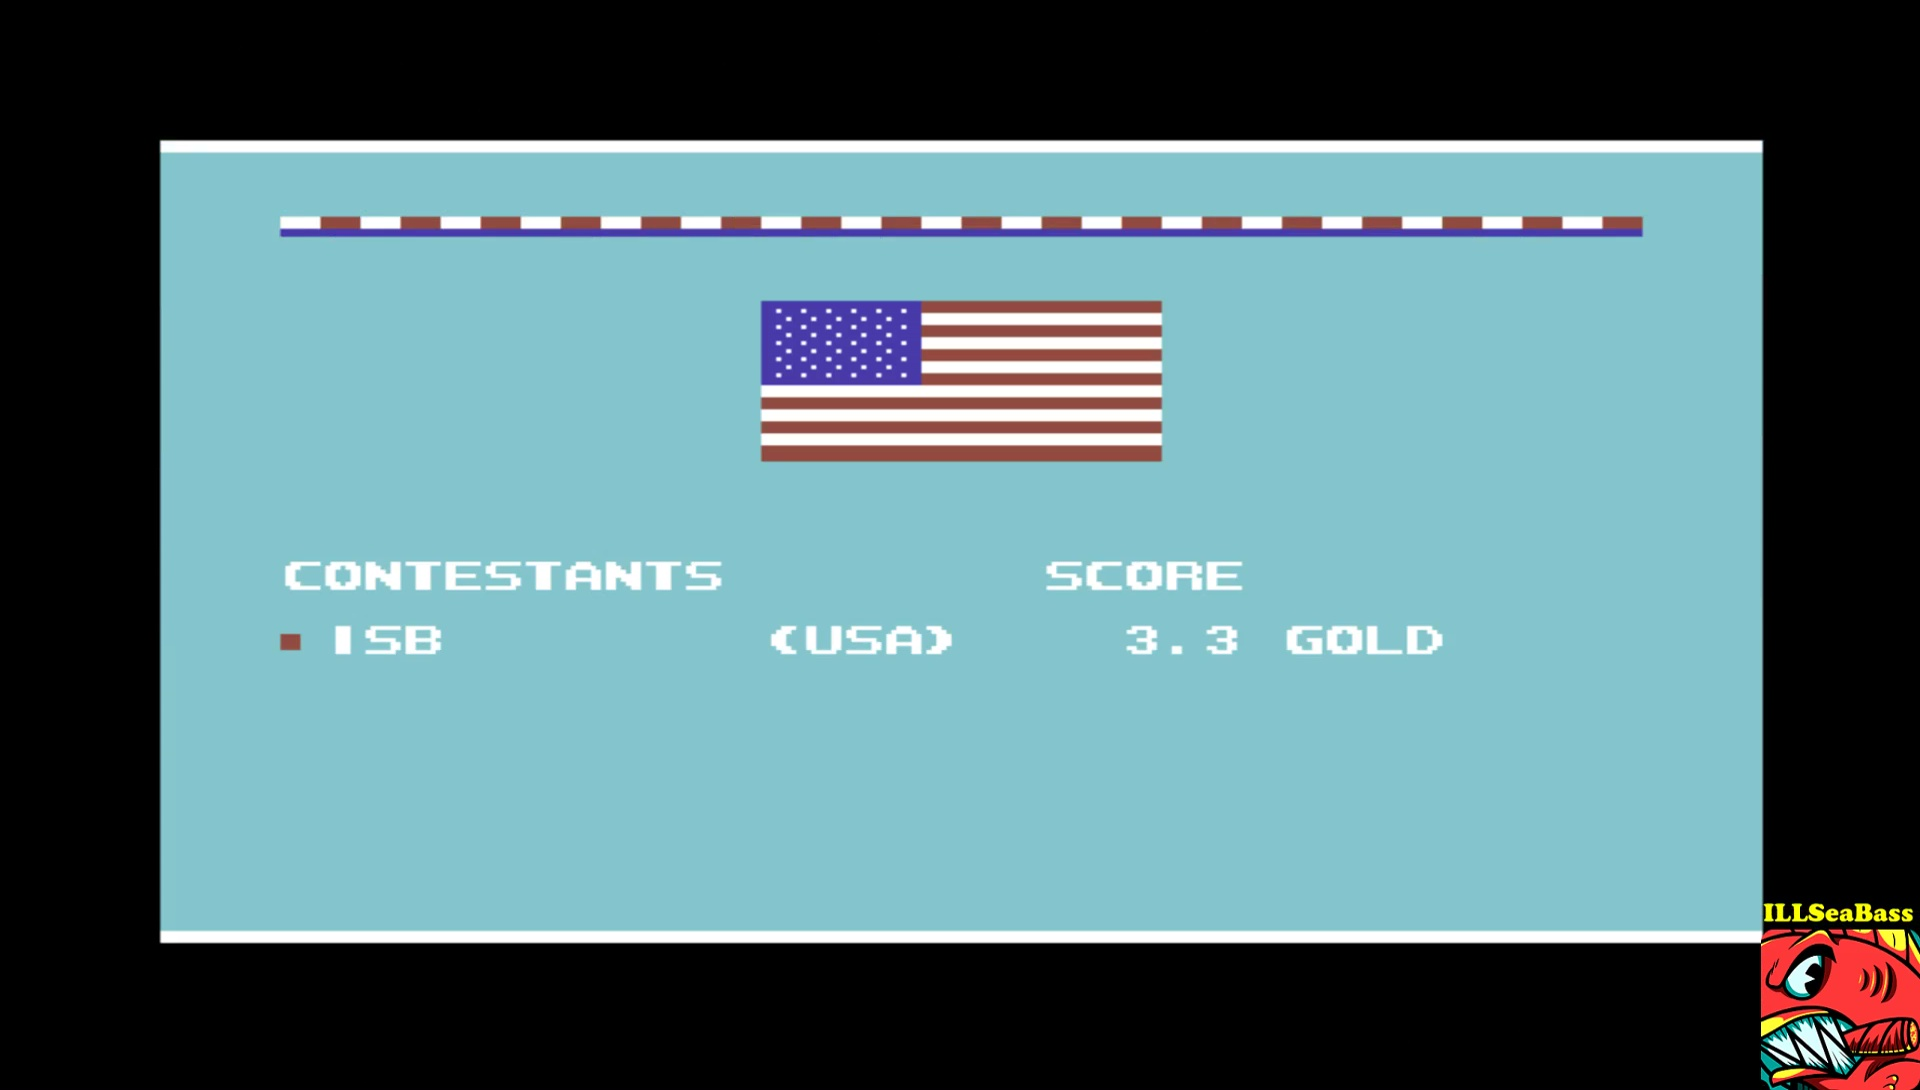 ILLSeaBass: Winter Games: Free Skating (Commodore 64 Emulated) 33 points on 2017-04-24 12:15:57